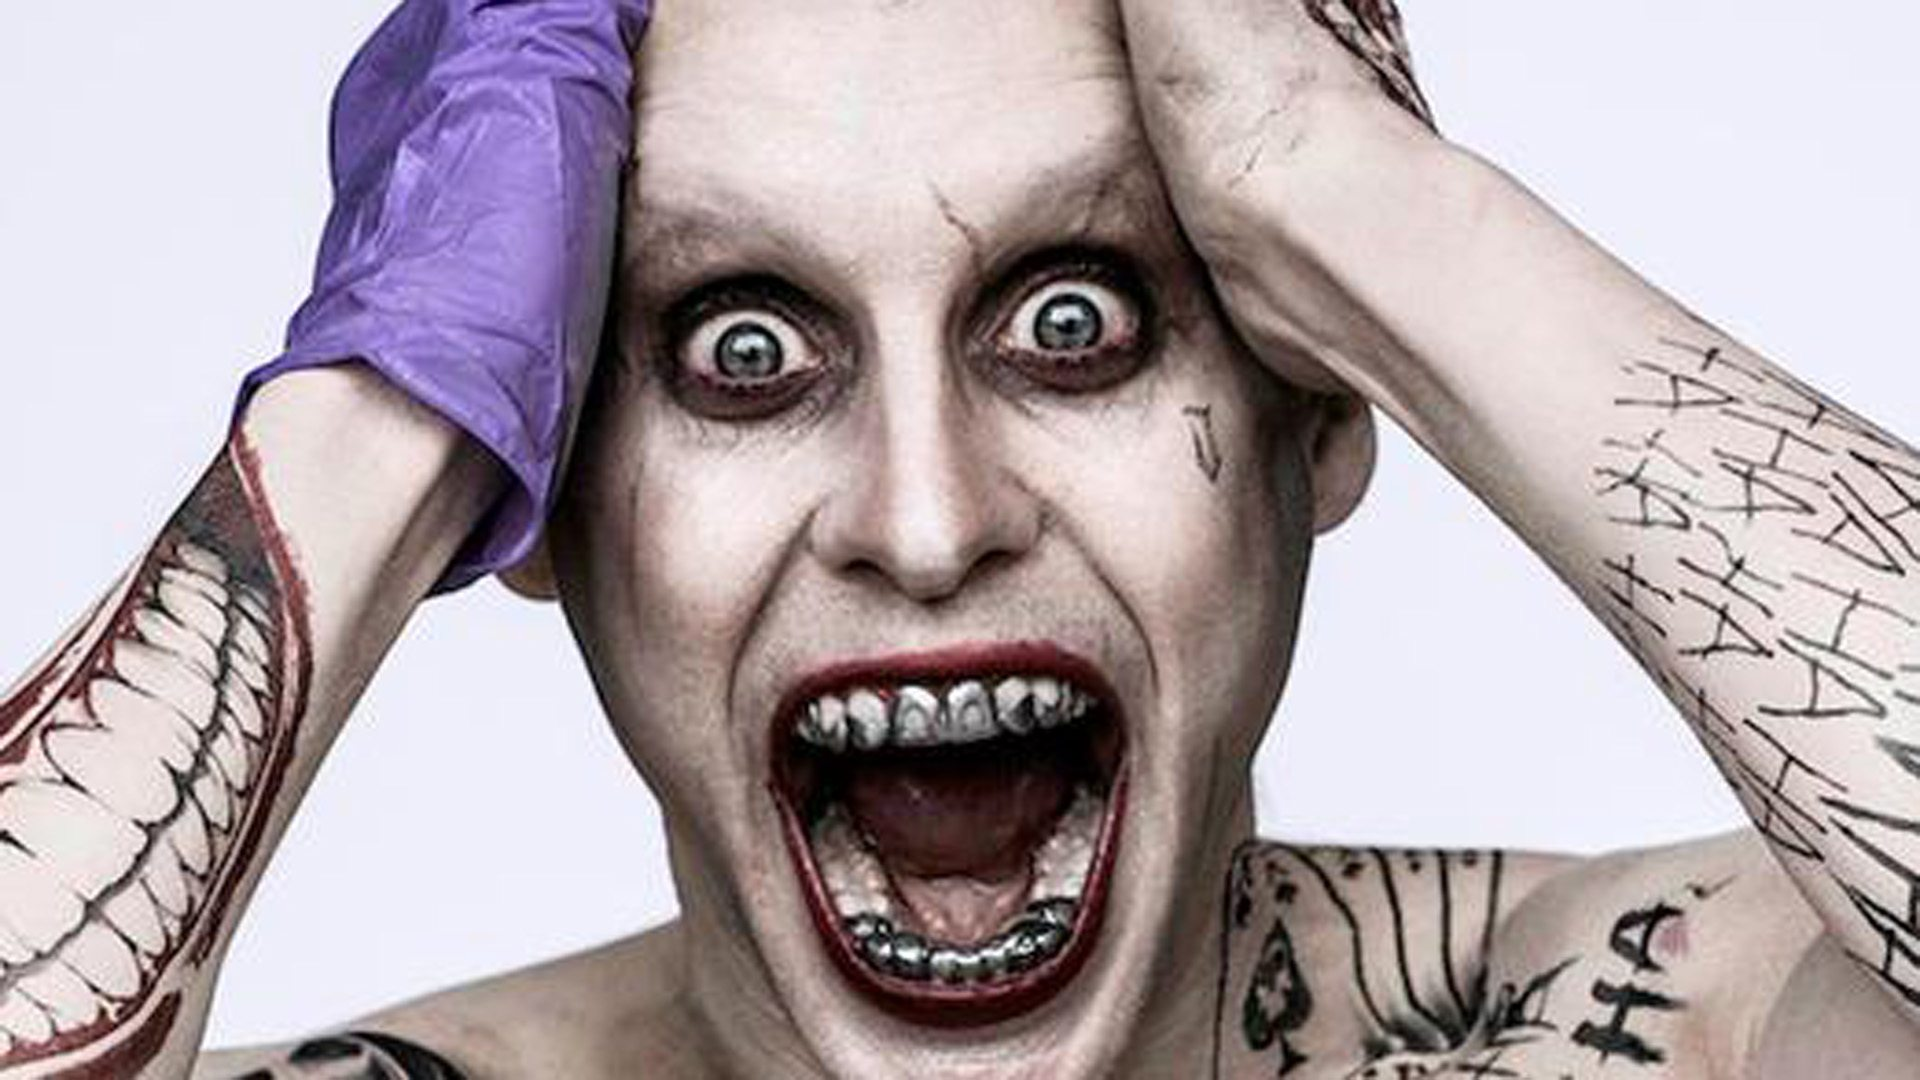 Jared Leto's Joker isn't as good or bad as many thought when the first promotional material was released